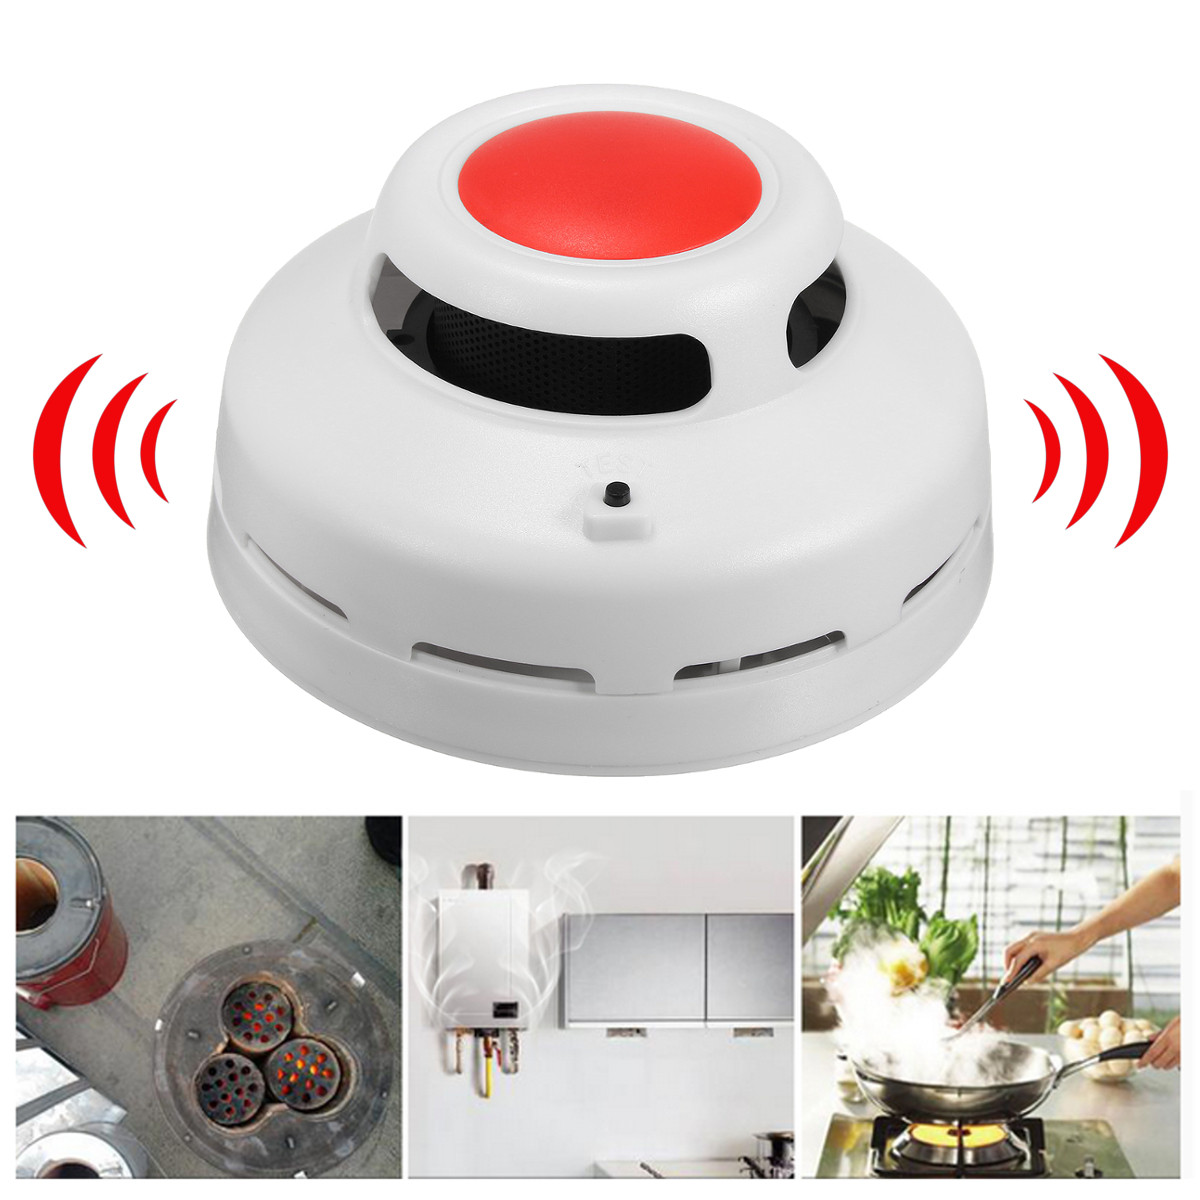 2 in 1 SMT CO Carbon Monoxide Fire & Smoke Alarm Detector Smart Gas Sensor Sound & Flash Alarm Warning Human Voice Prompt SMT Photoelectric Tester Battery Operated